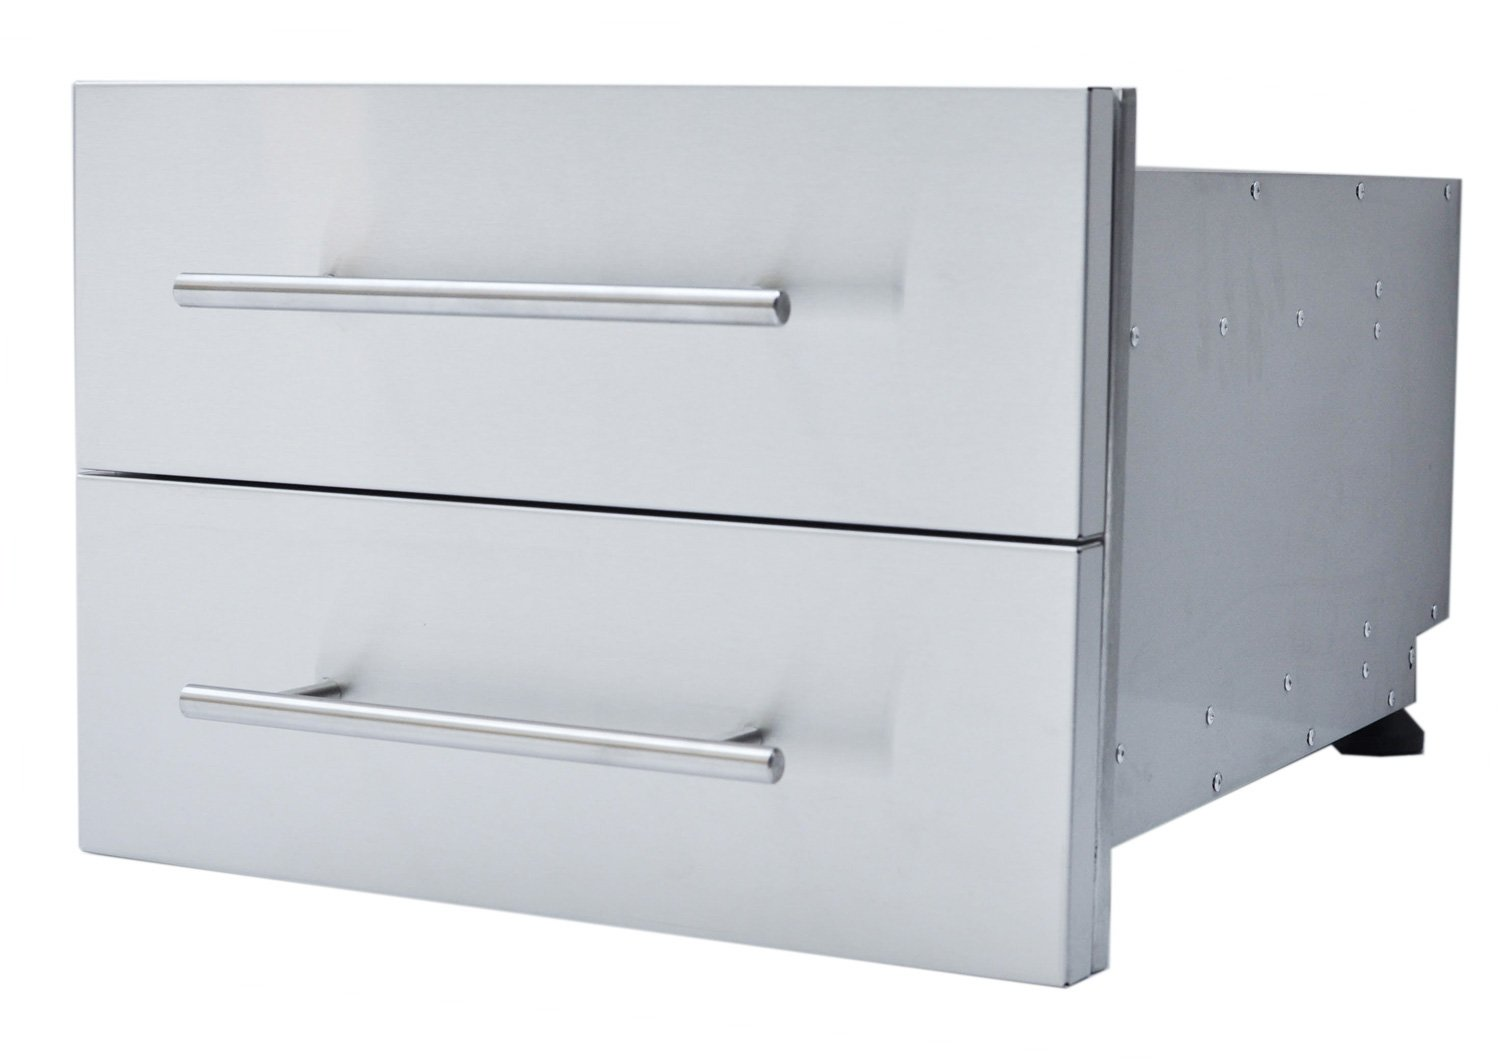 SUNSTONE DE-DD13 Designer Series Raised Style Height Double Drawer, 18'' x 13'', Stainless Steel